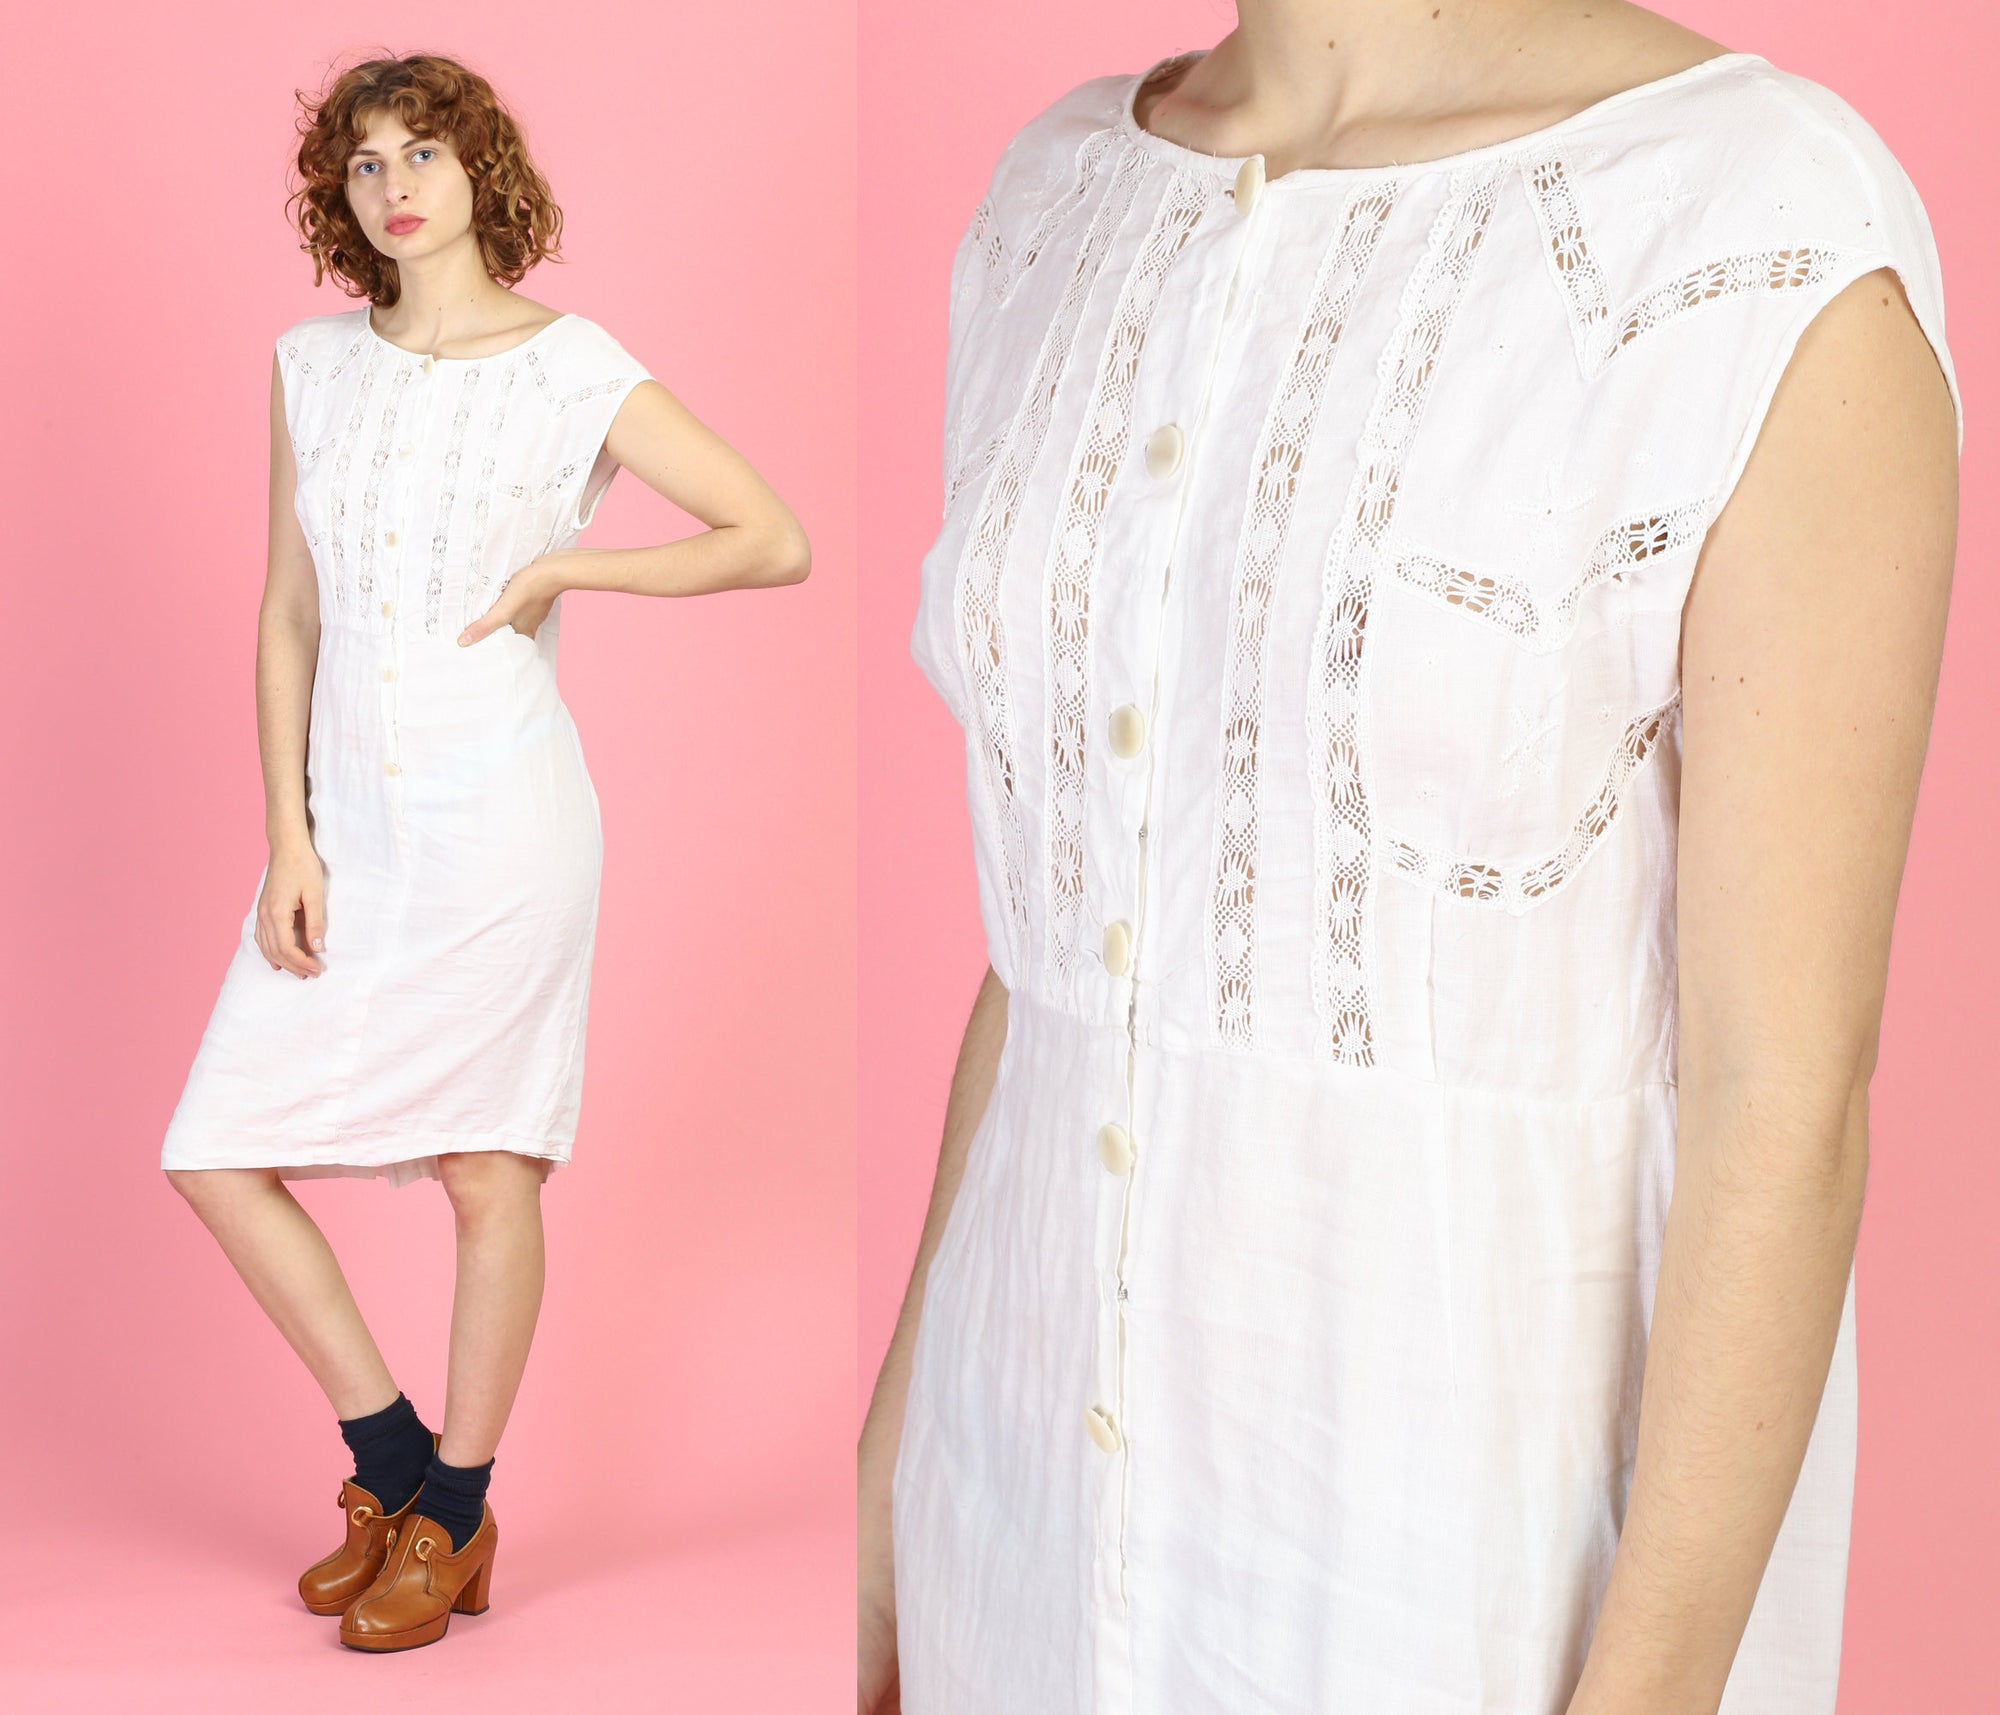 60s White Eyelet Cotton Dress - Large